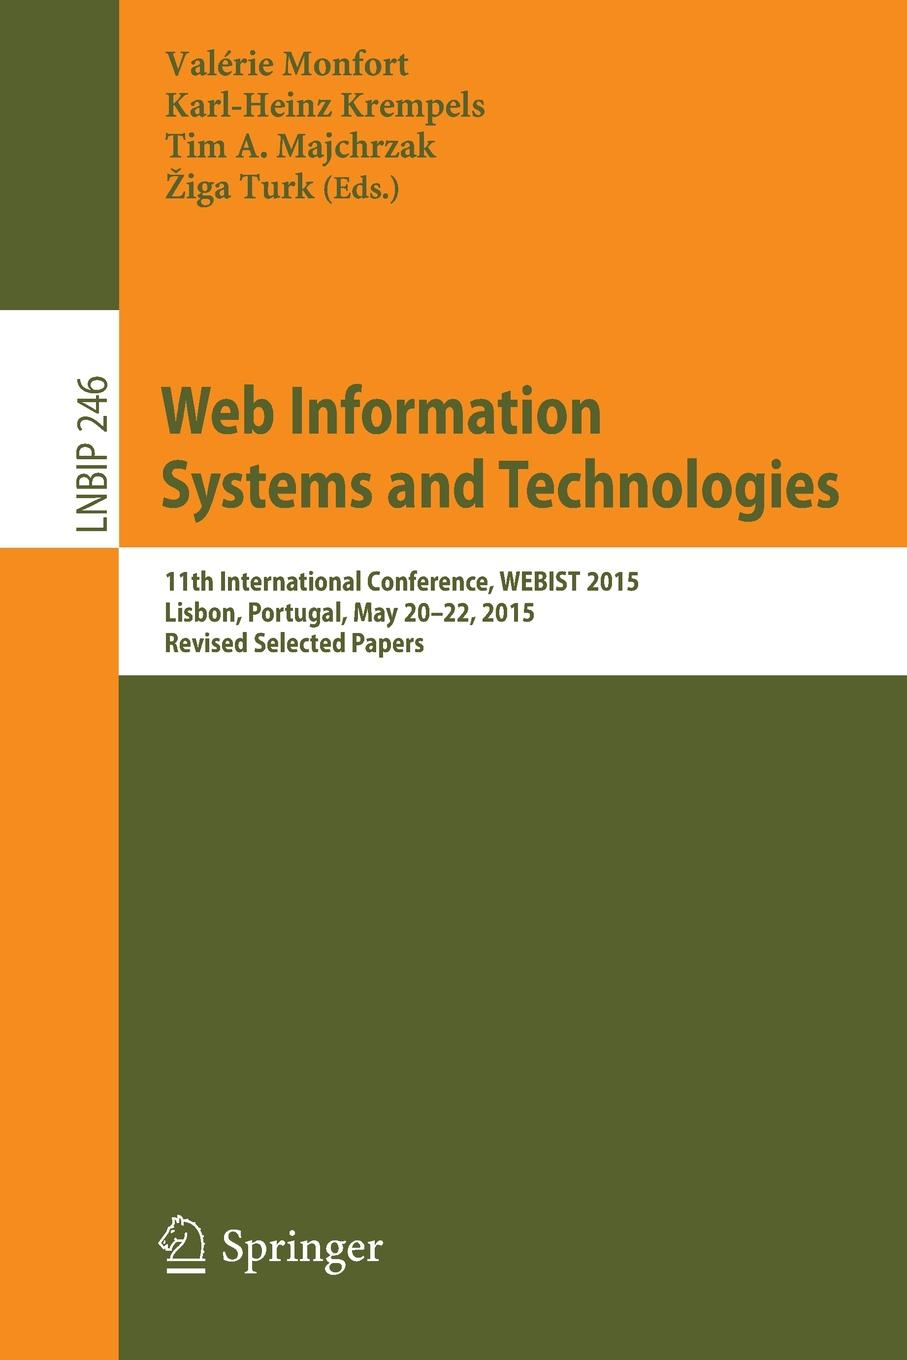 Web Information Systems and Technologies. 11th International Conference, WEBIST 2015, Lisbon, Portugal, May 20-22, 2015, Revised Selected Papers snehal joglekar web technologies